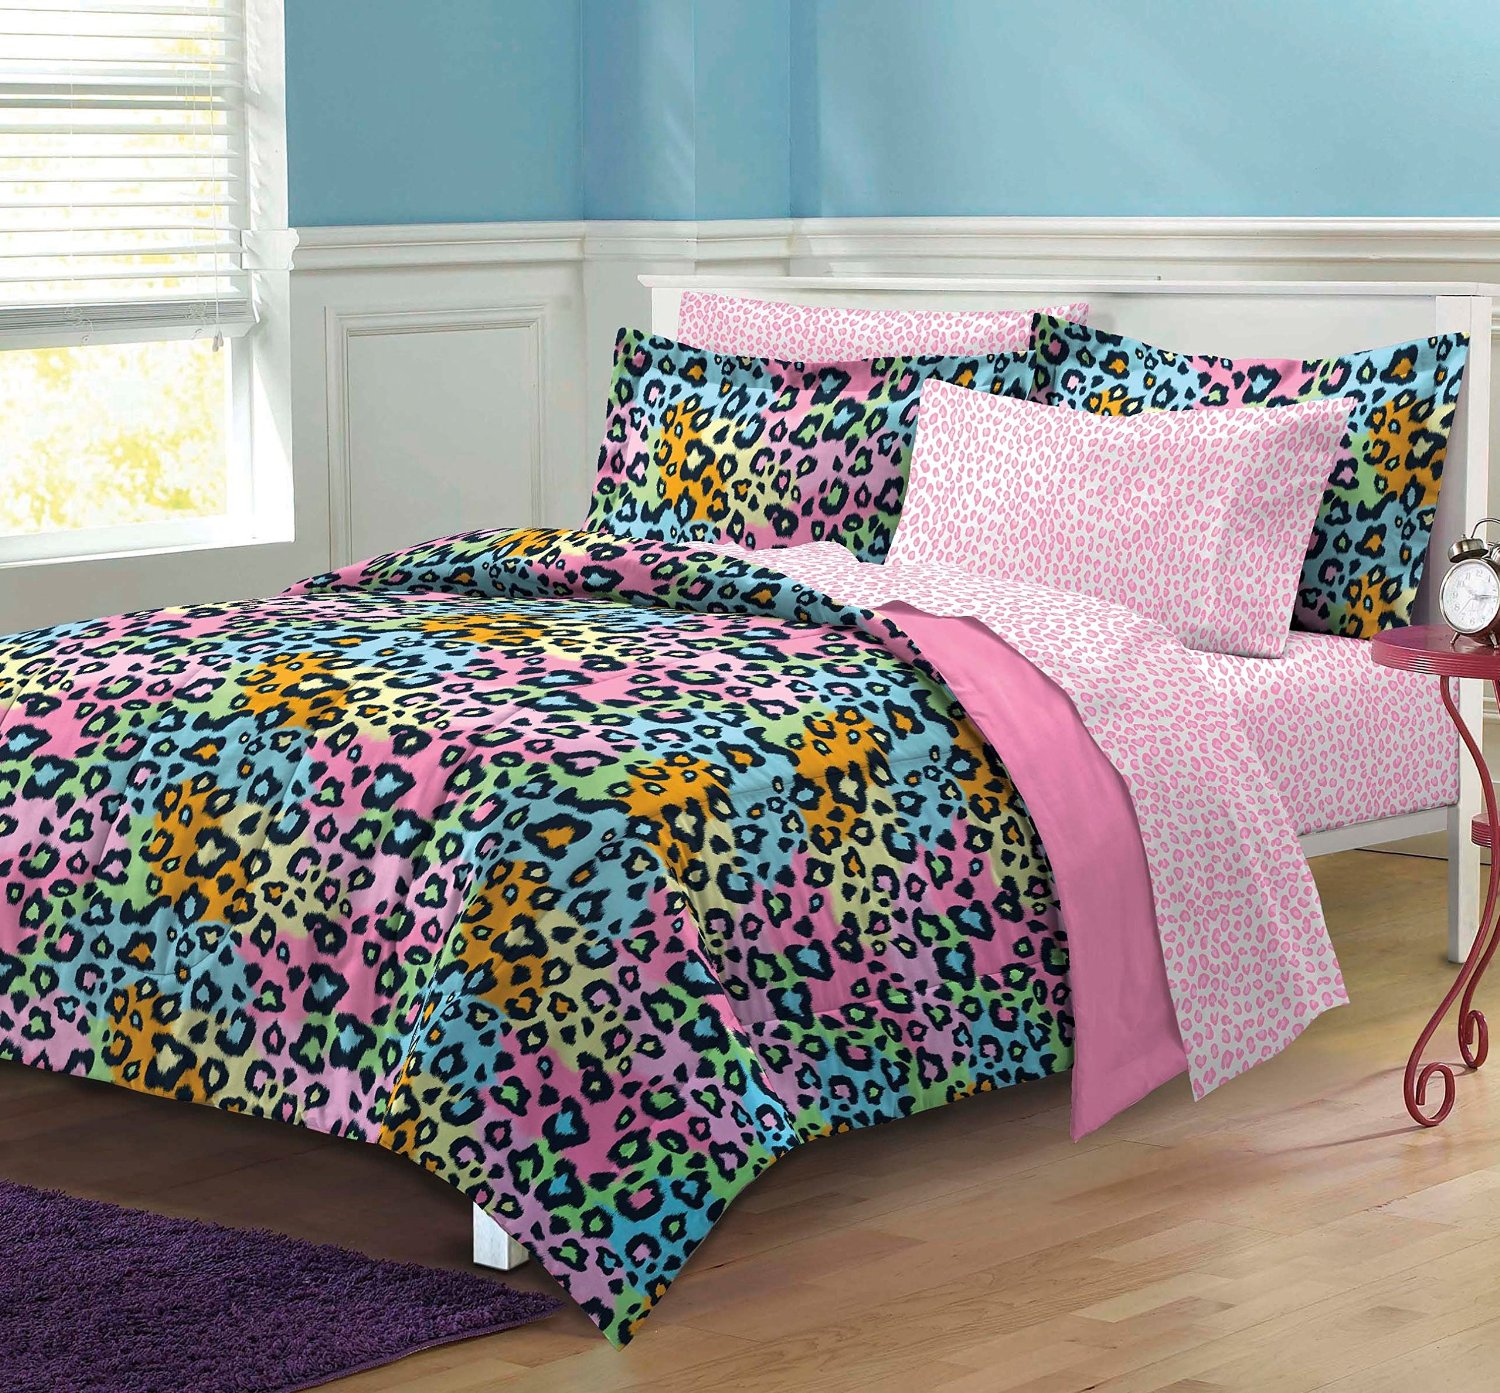 Funky comforters bedding bedroom ideas for tween teen Funky bedroom accessories